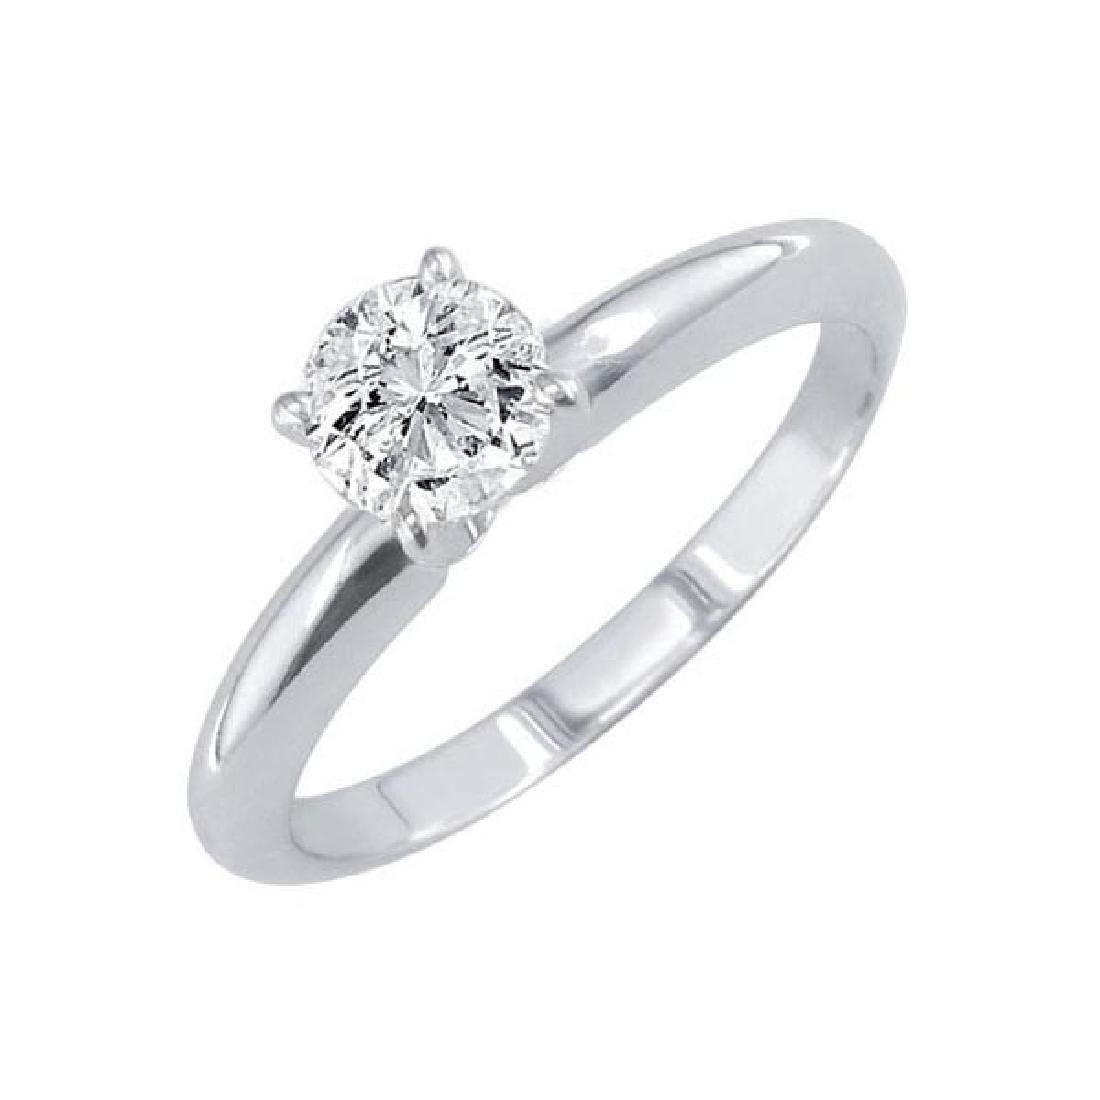 Certified 1.2 CTW Round Diamond Solitaire 14k Ring H/I1